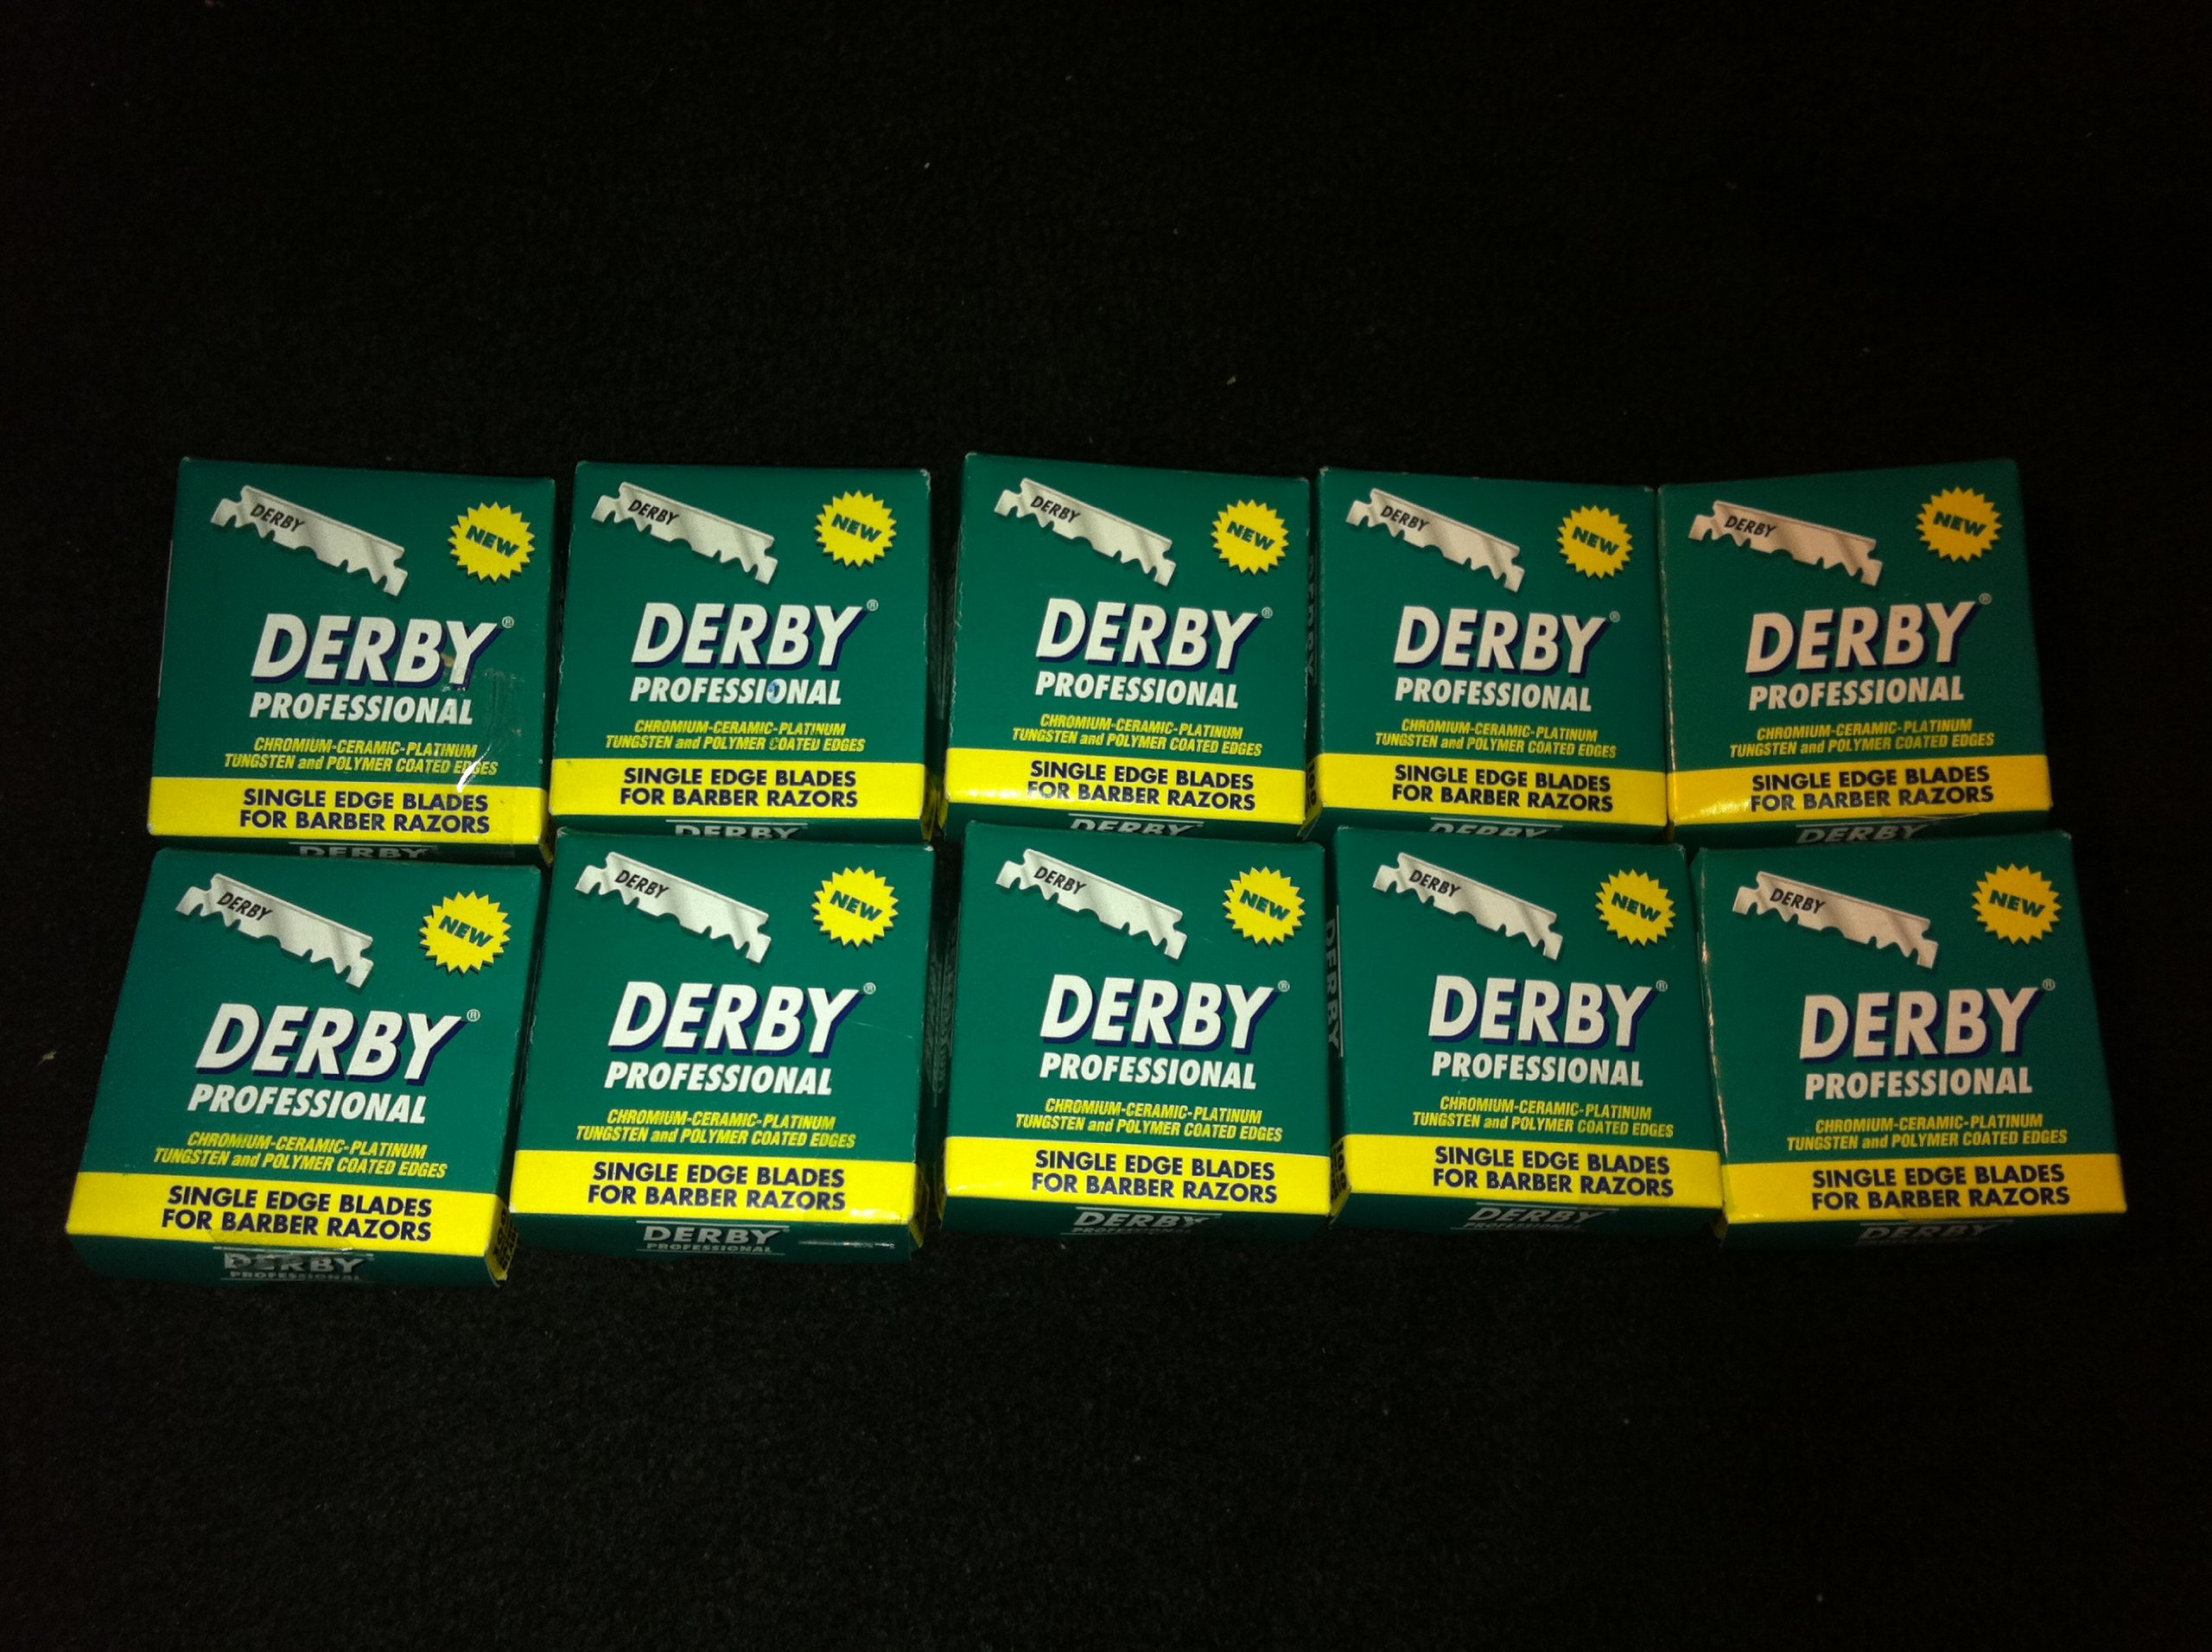 1000 ''Derby Professional'' Single Edge Razor Blades for straight razor